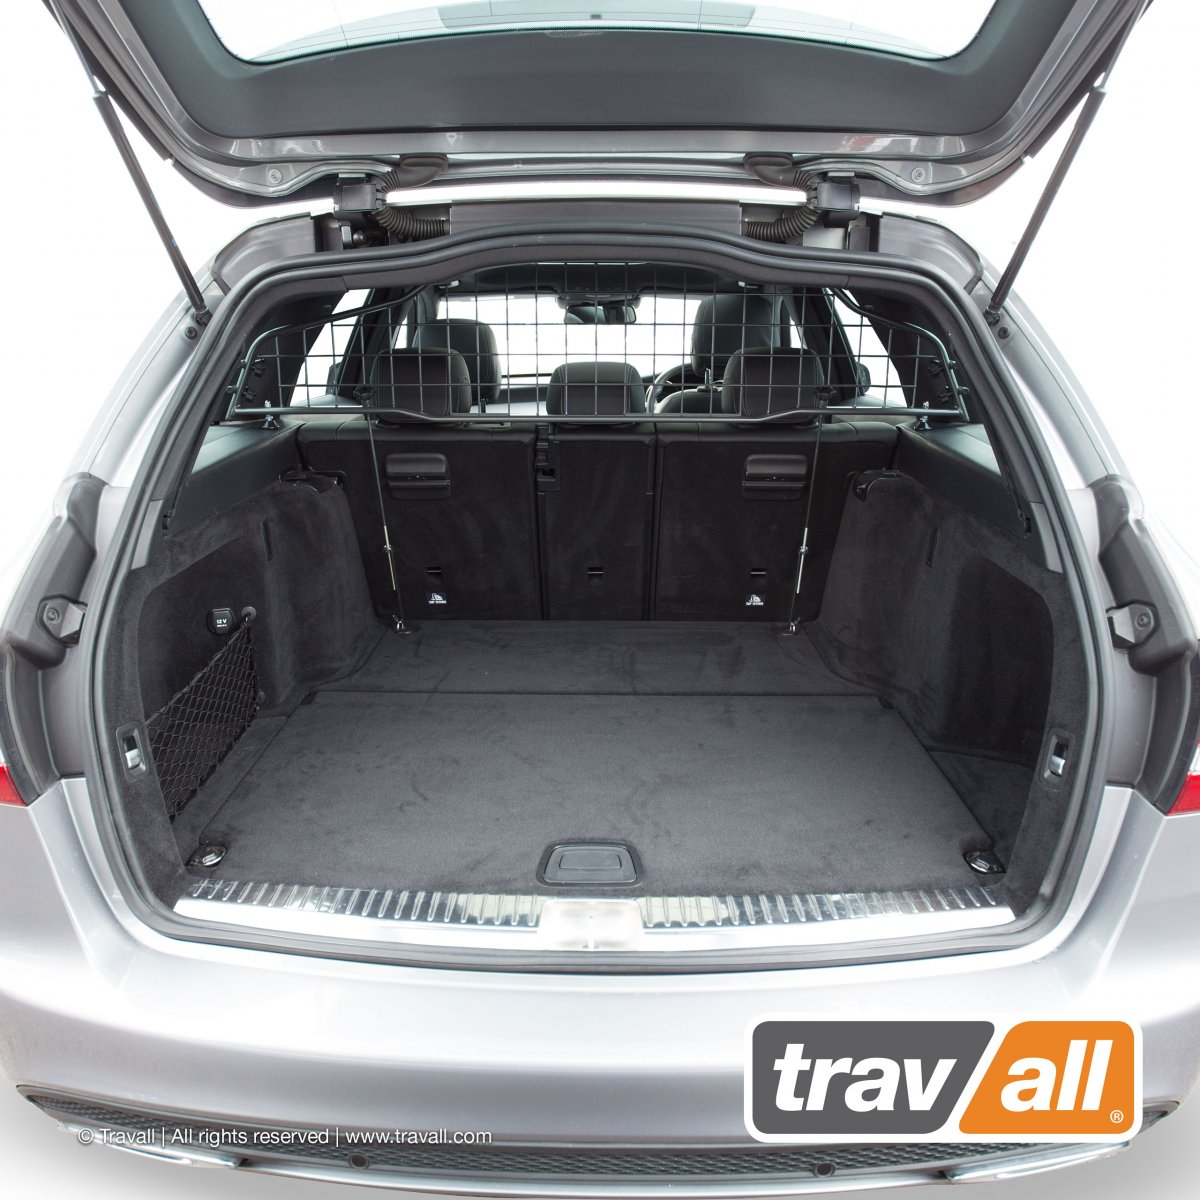 Travall®GUARD para Mercedes Benz Clase-C Estate (2014 >)